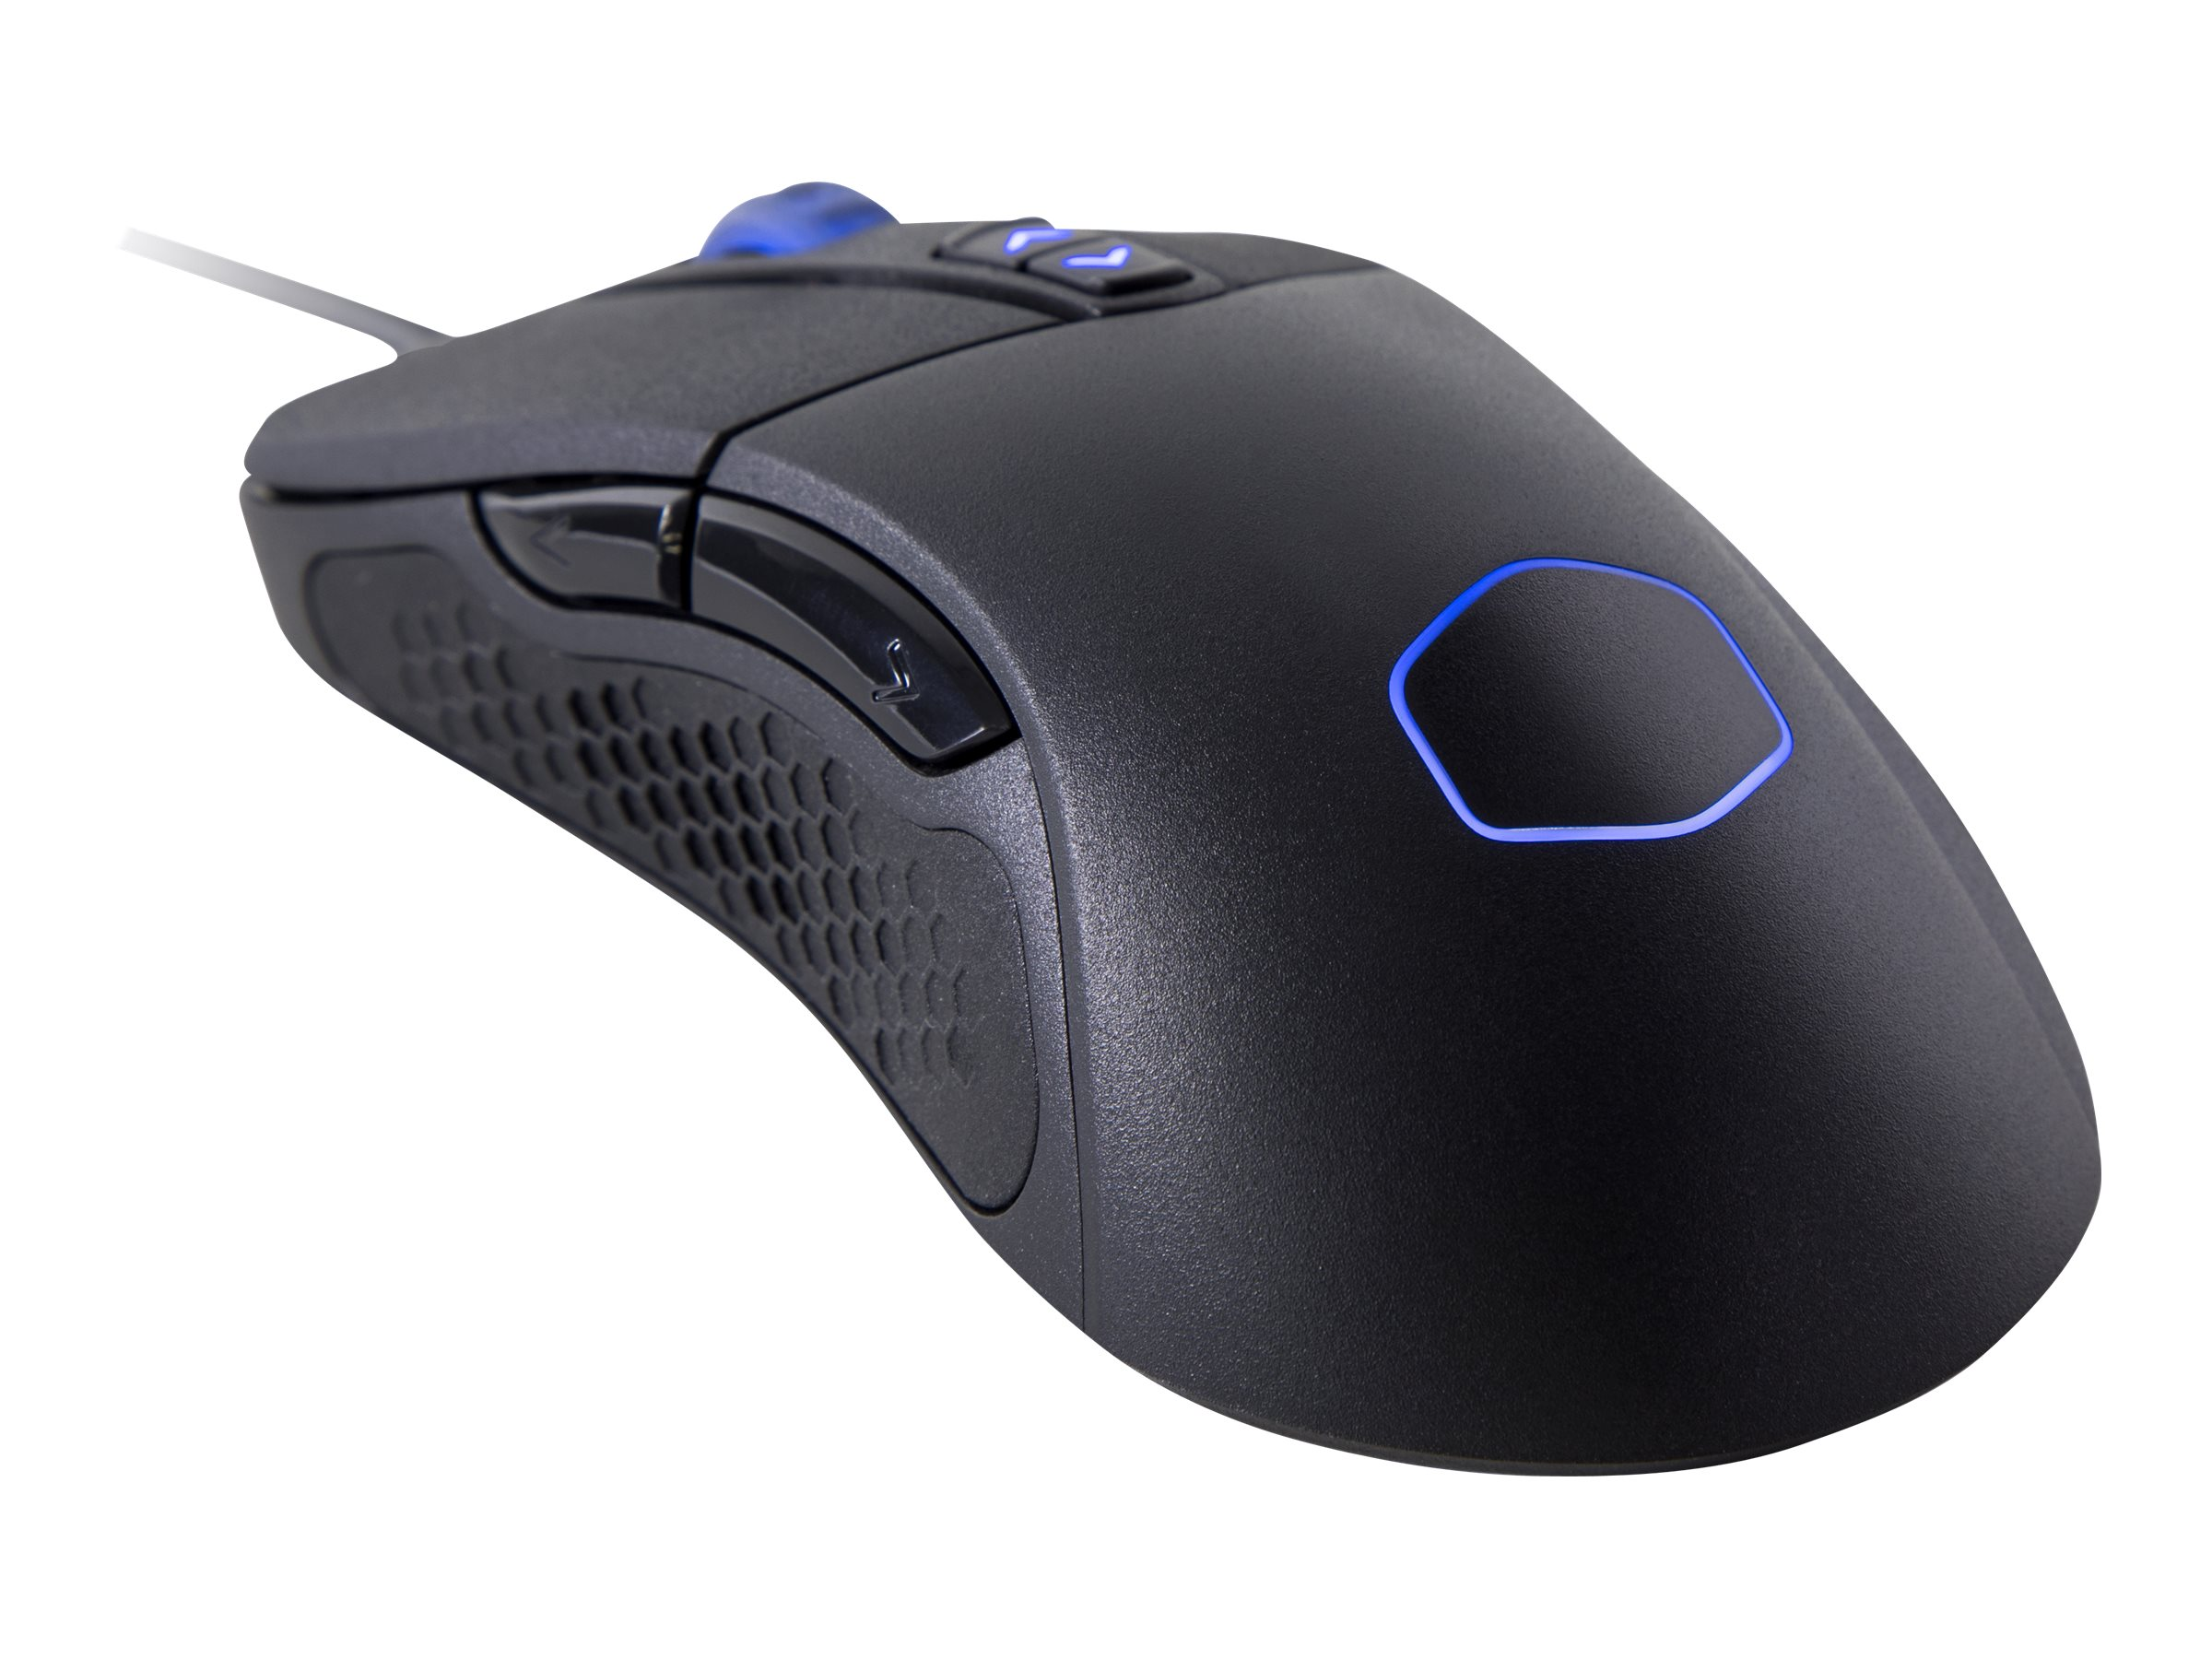 Cooler Master MasterMouse MM531 - mouse - USB - black